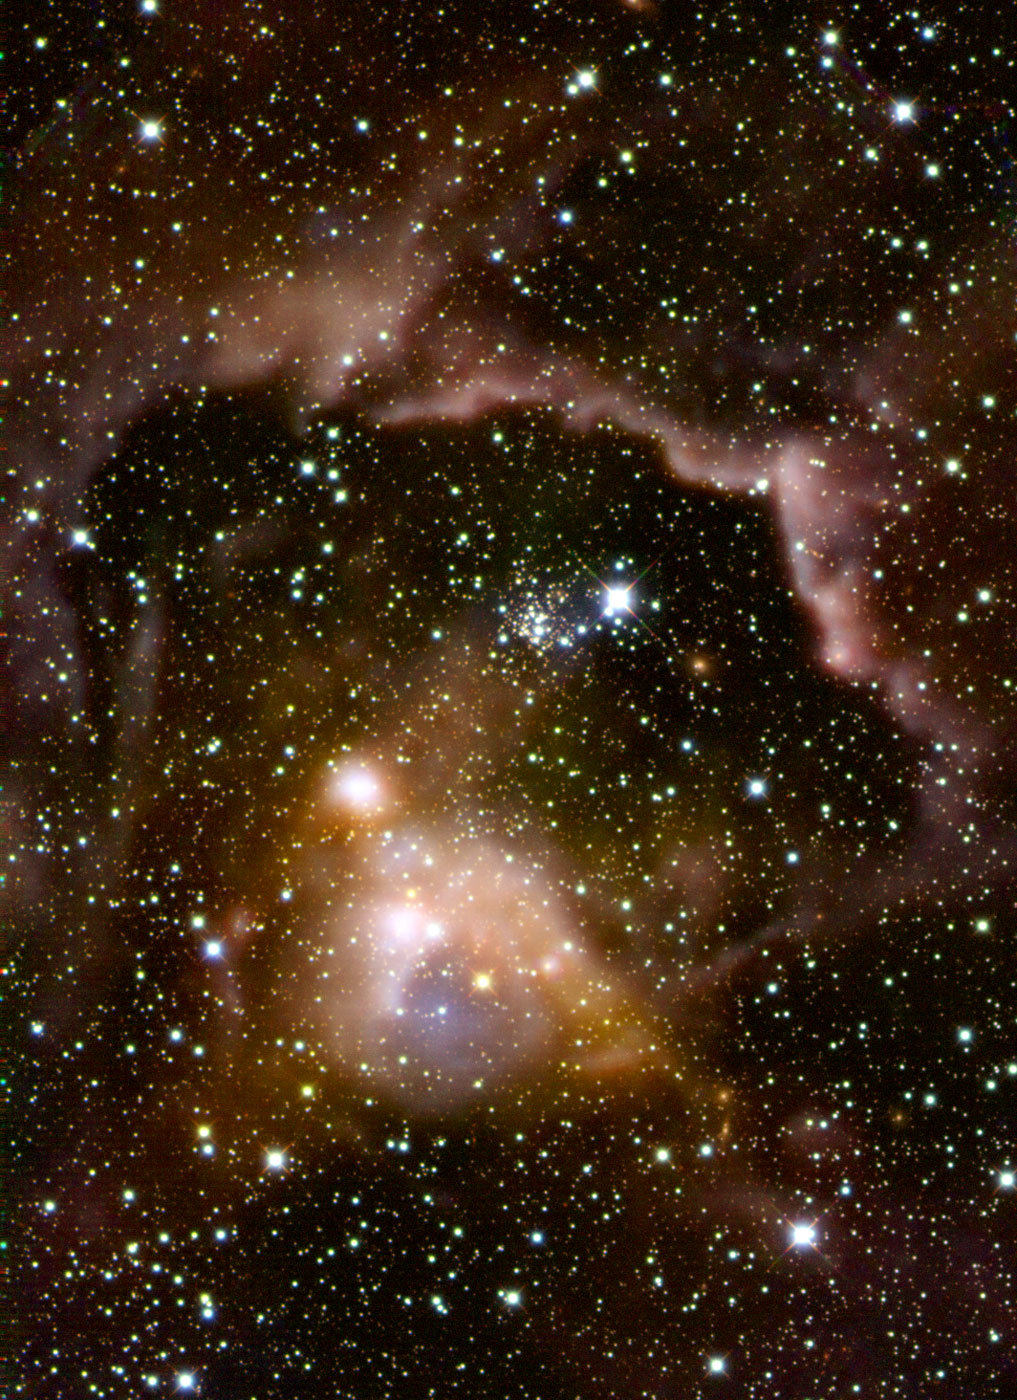 Herschel far-infrared image of the high-mass star-forming region ISOSS 22164+6003